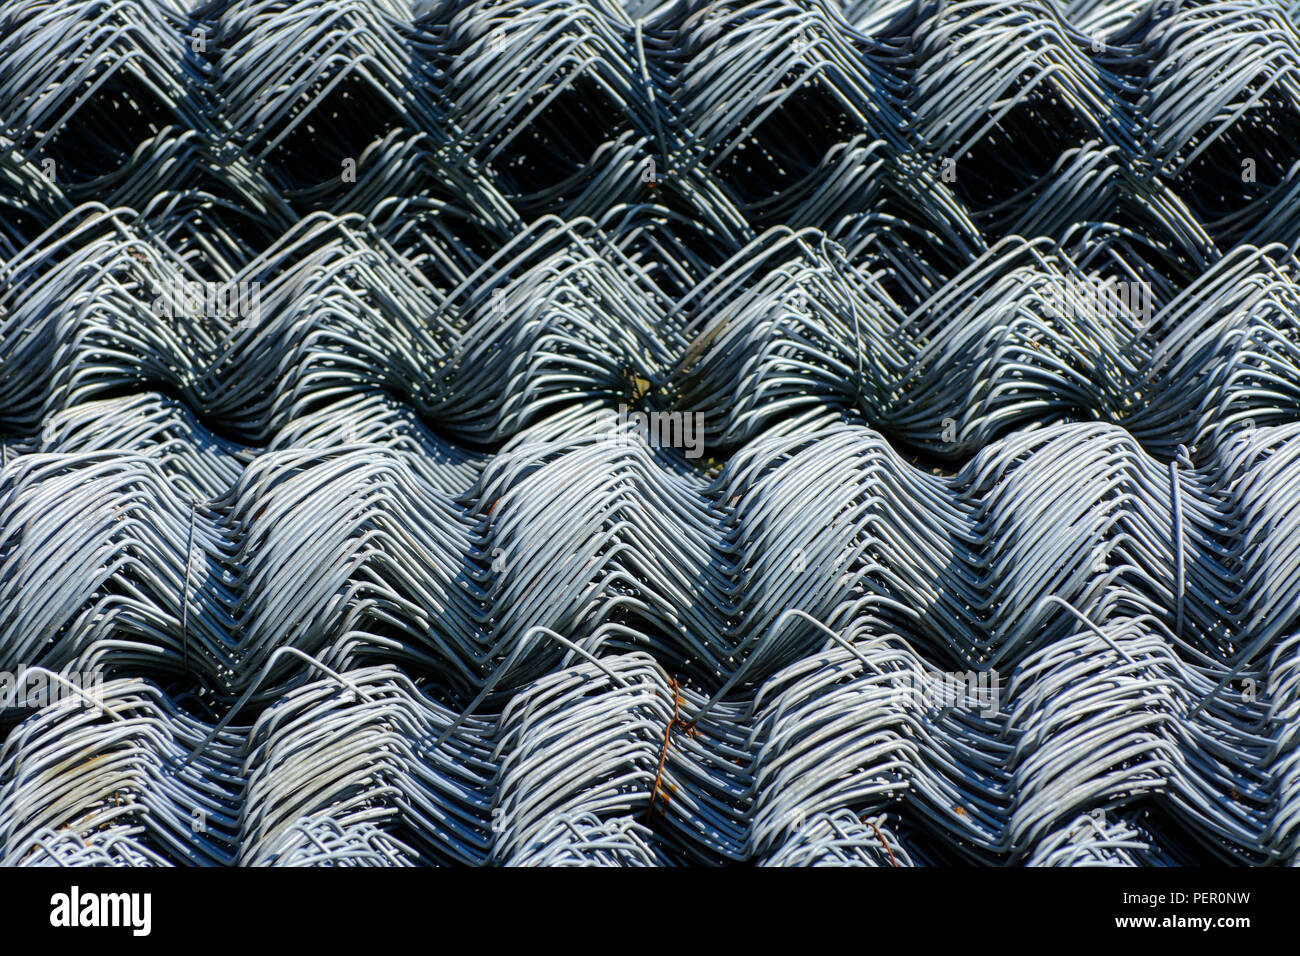 Rolls of galvanized steel wire mesh with a large cell and twisted ...